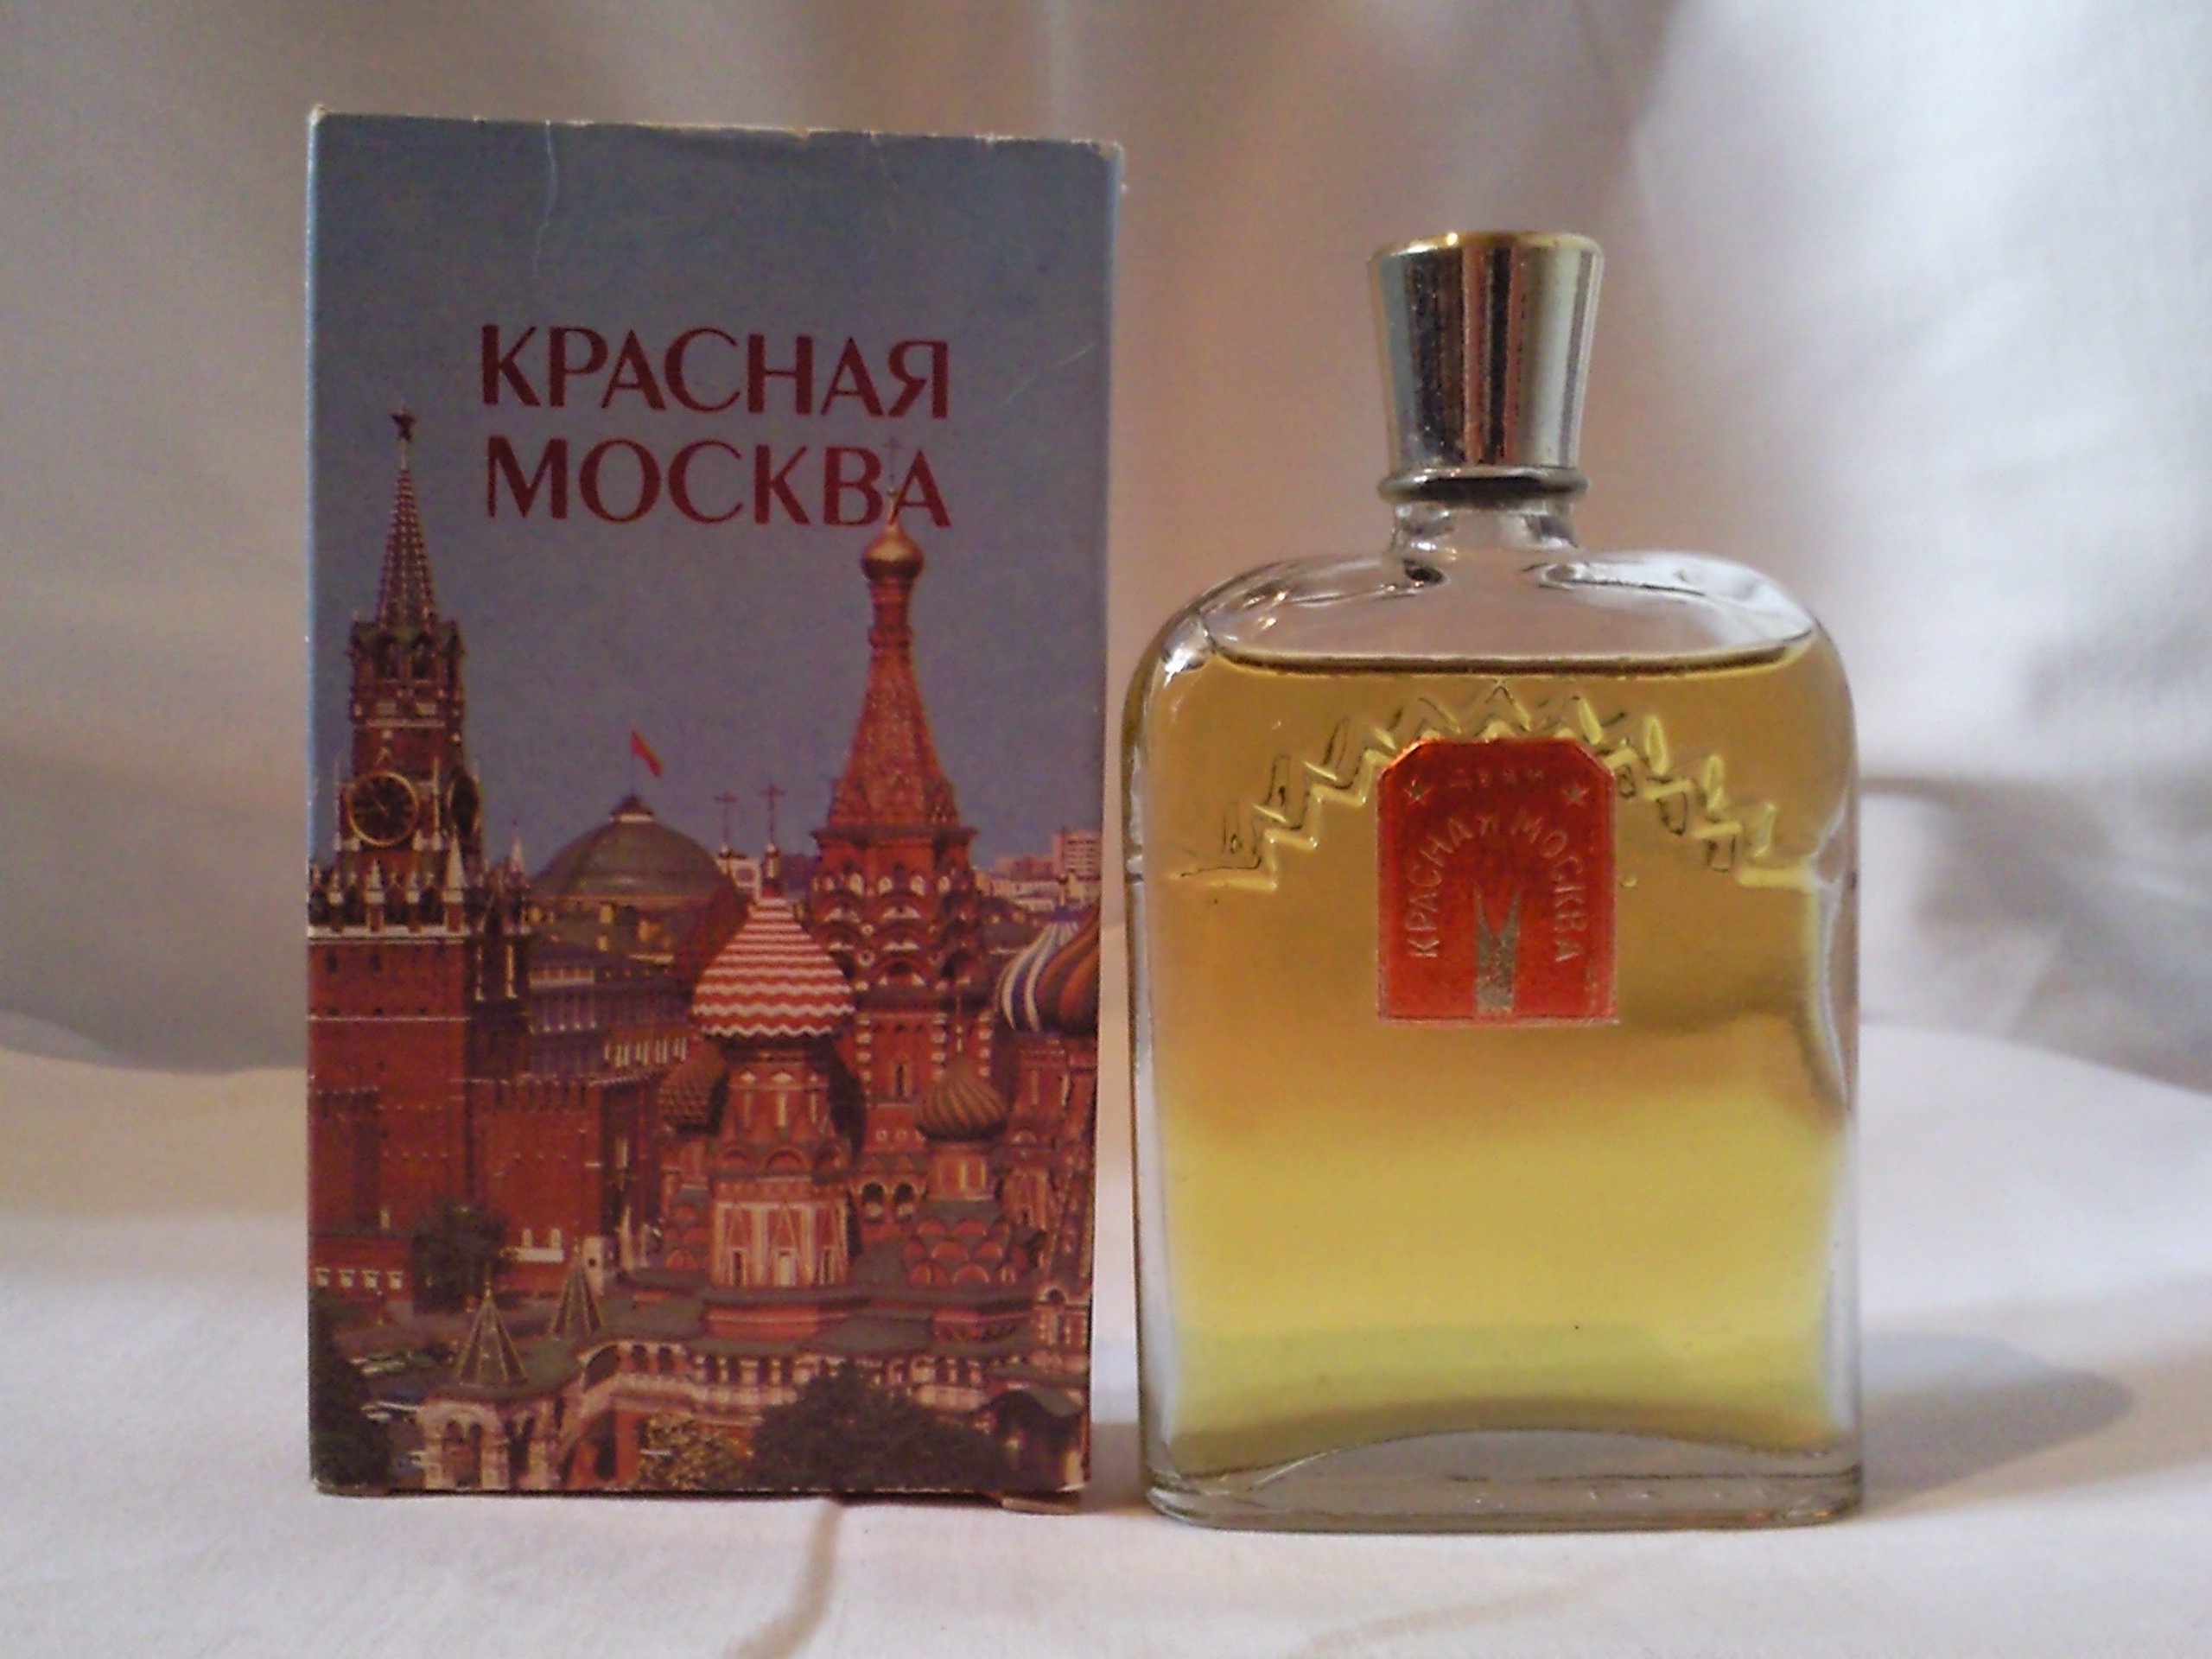 Going rouge: a brief history of Soviet cosmetics